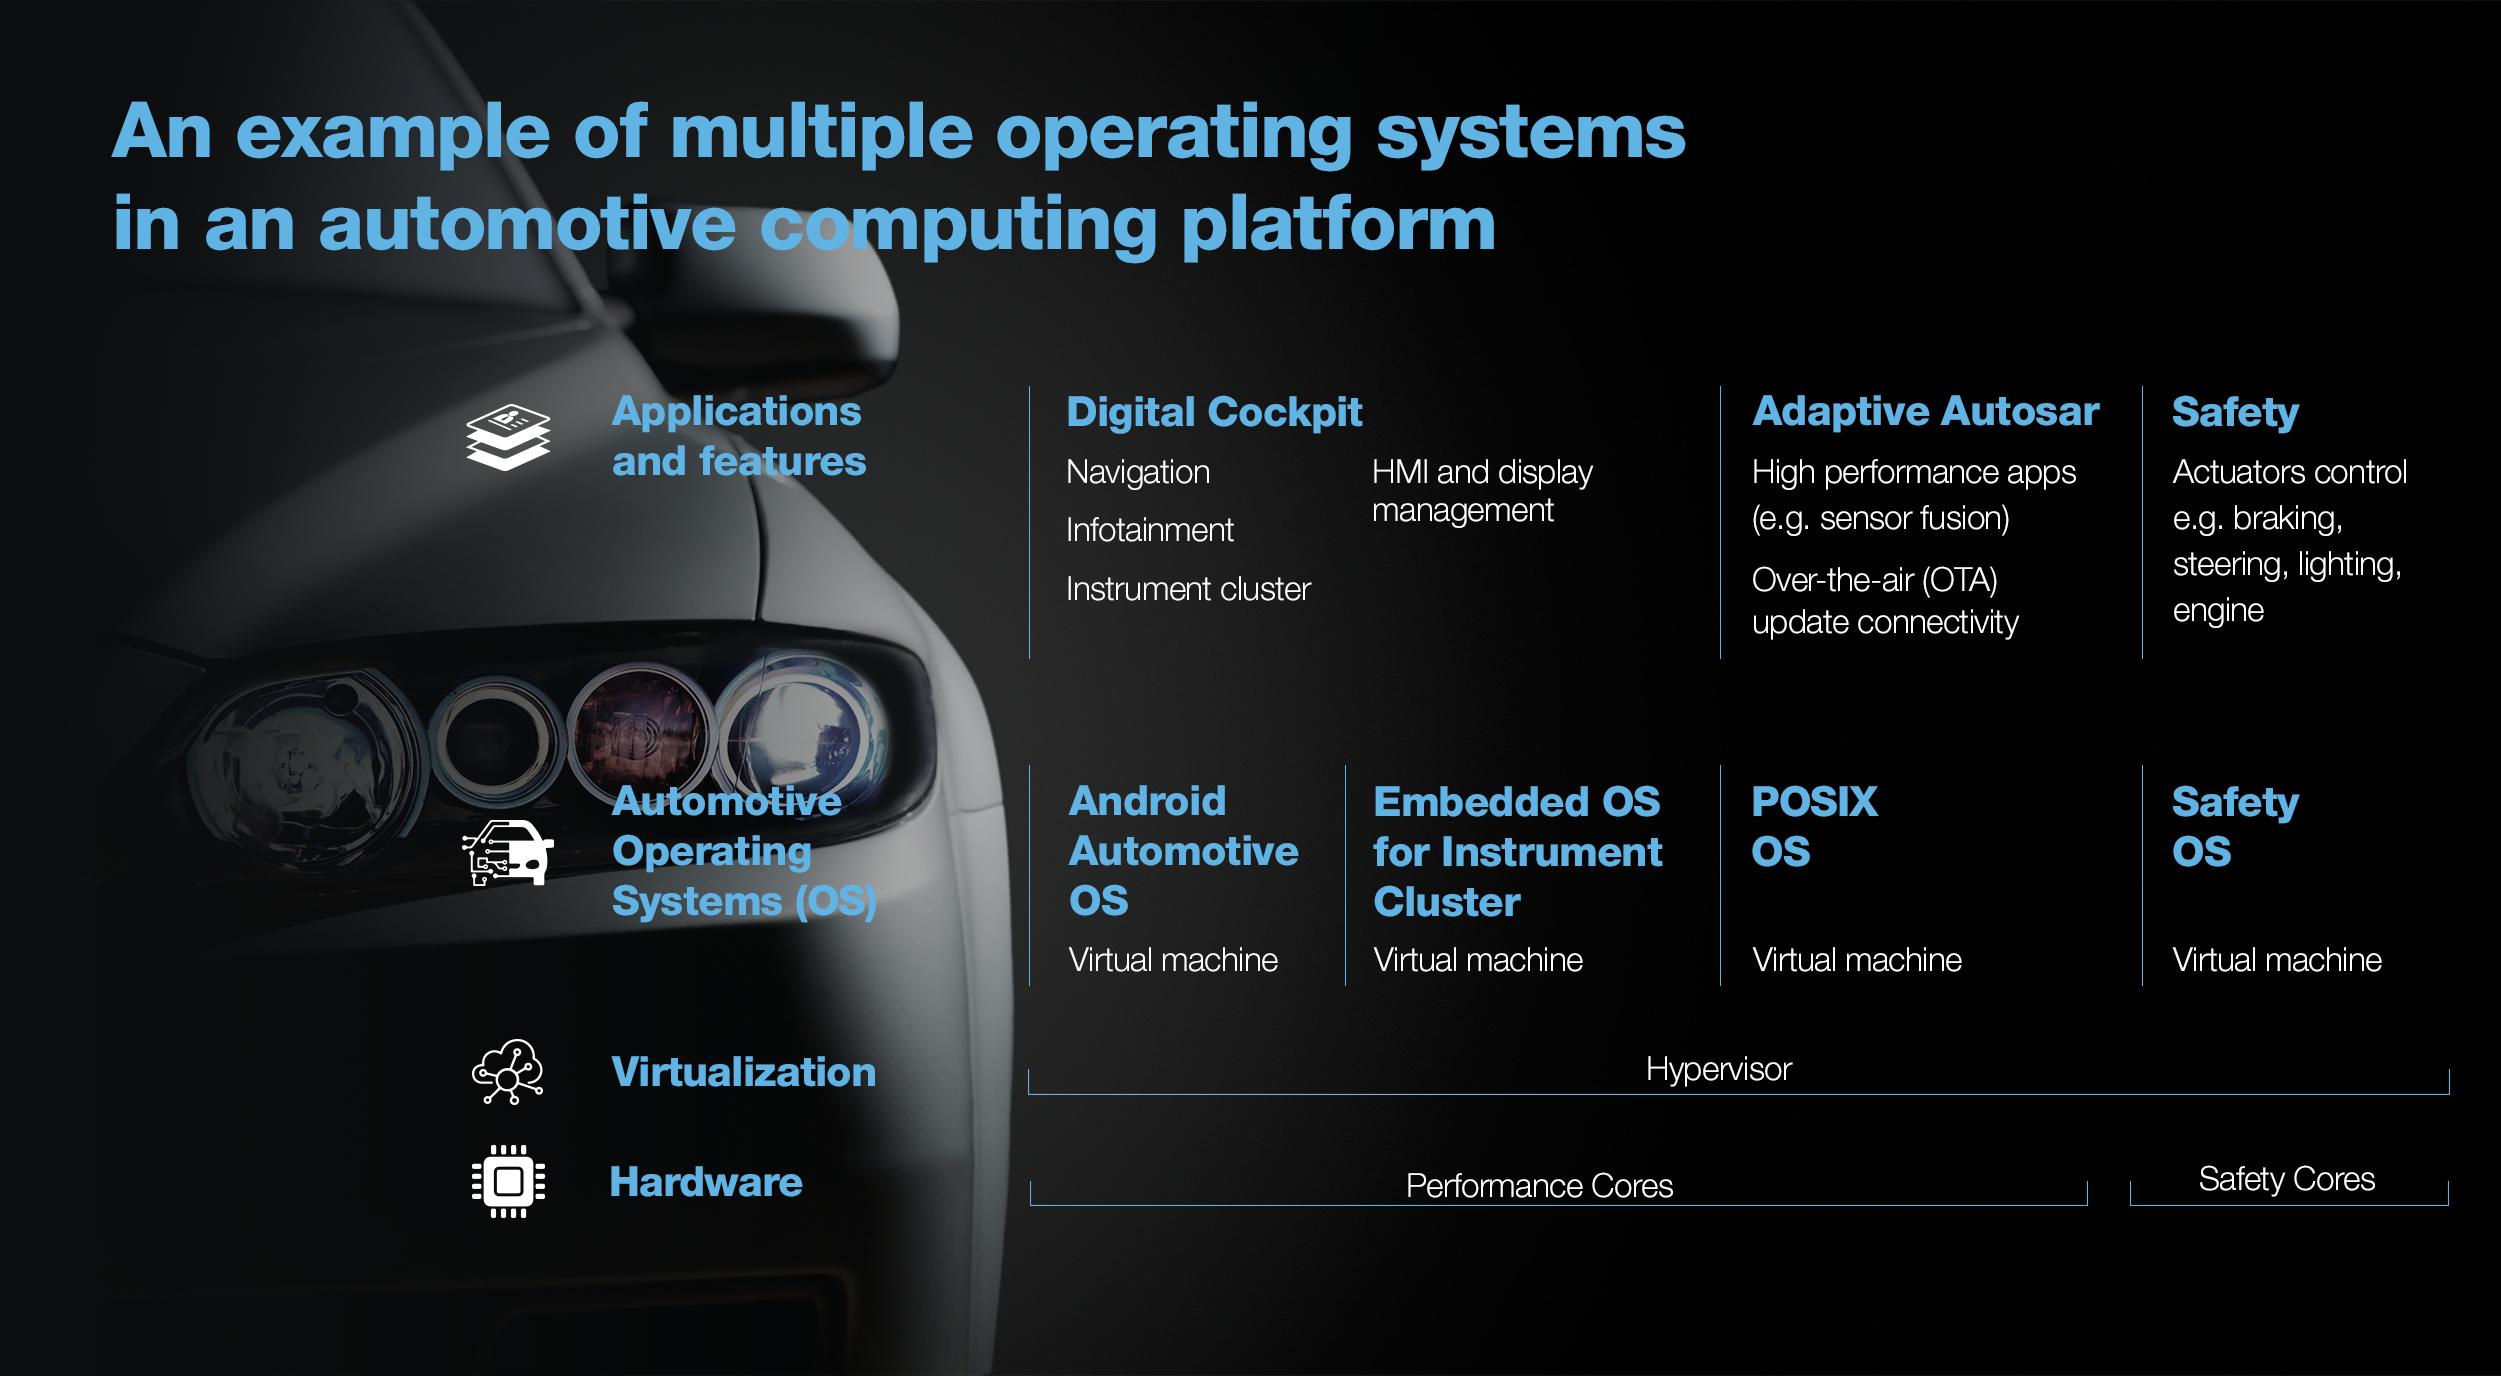 How will Android Automotive impact product development? | Tieto